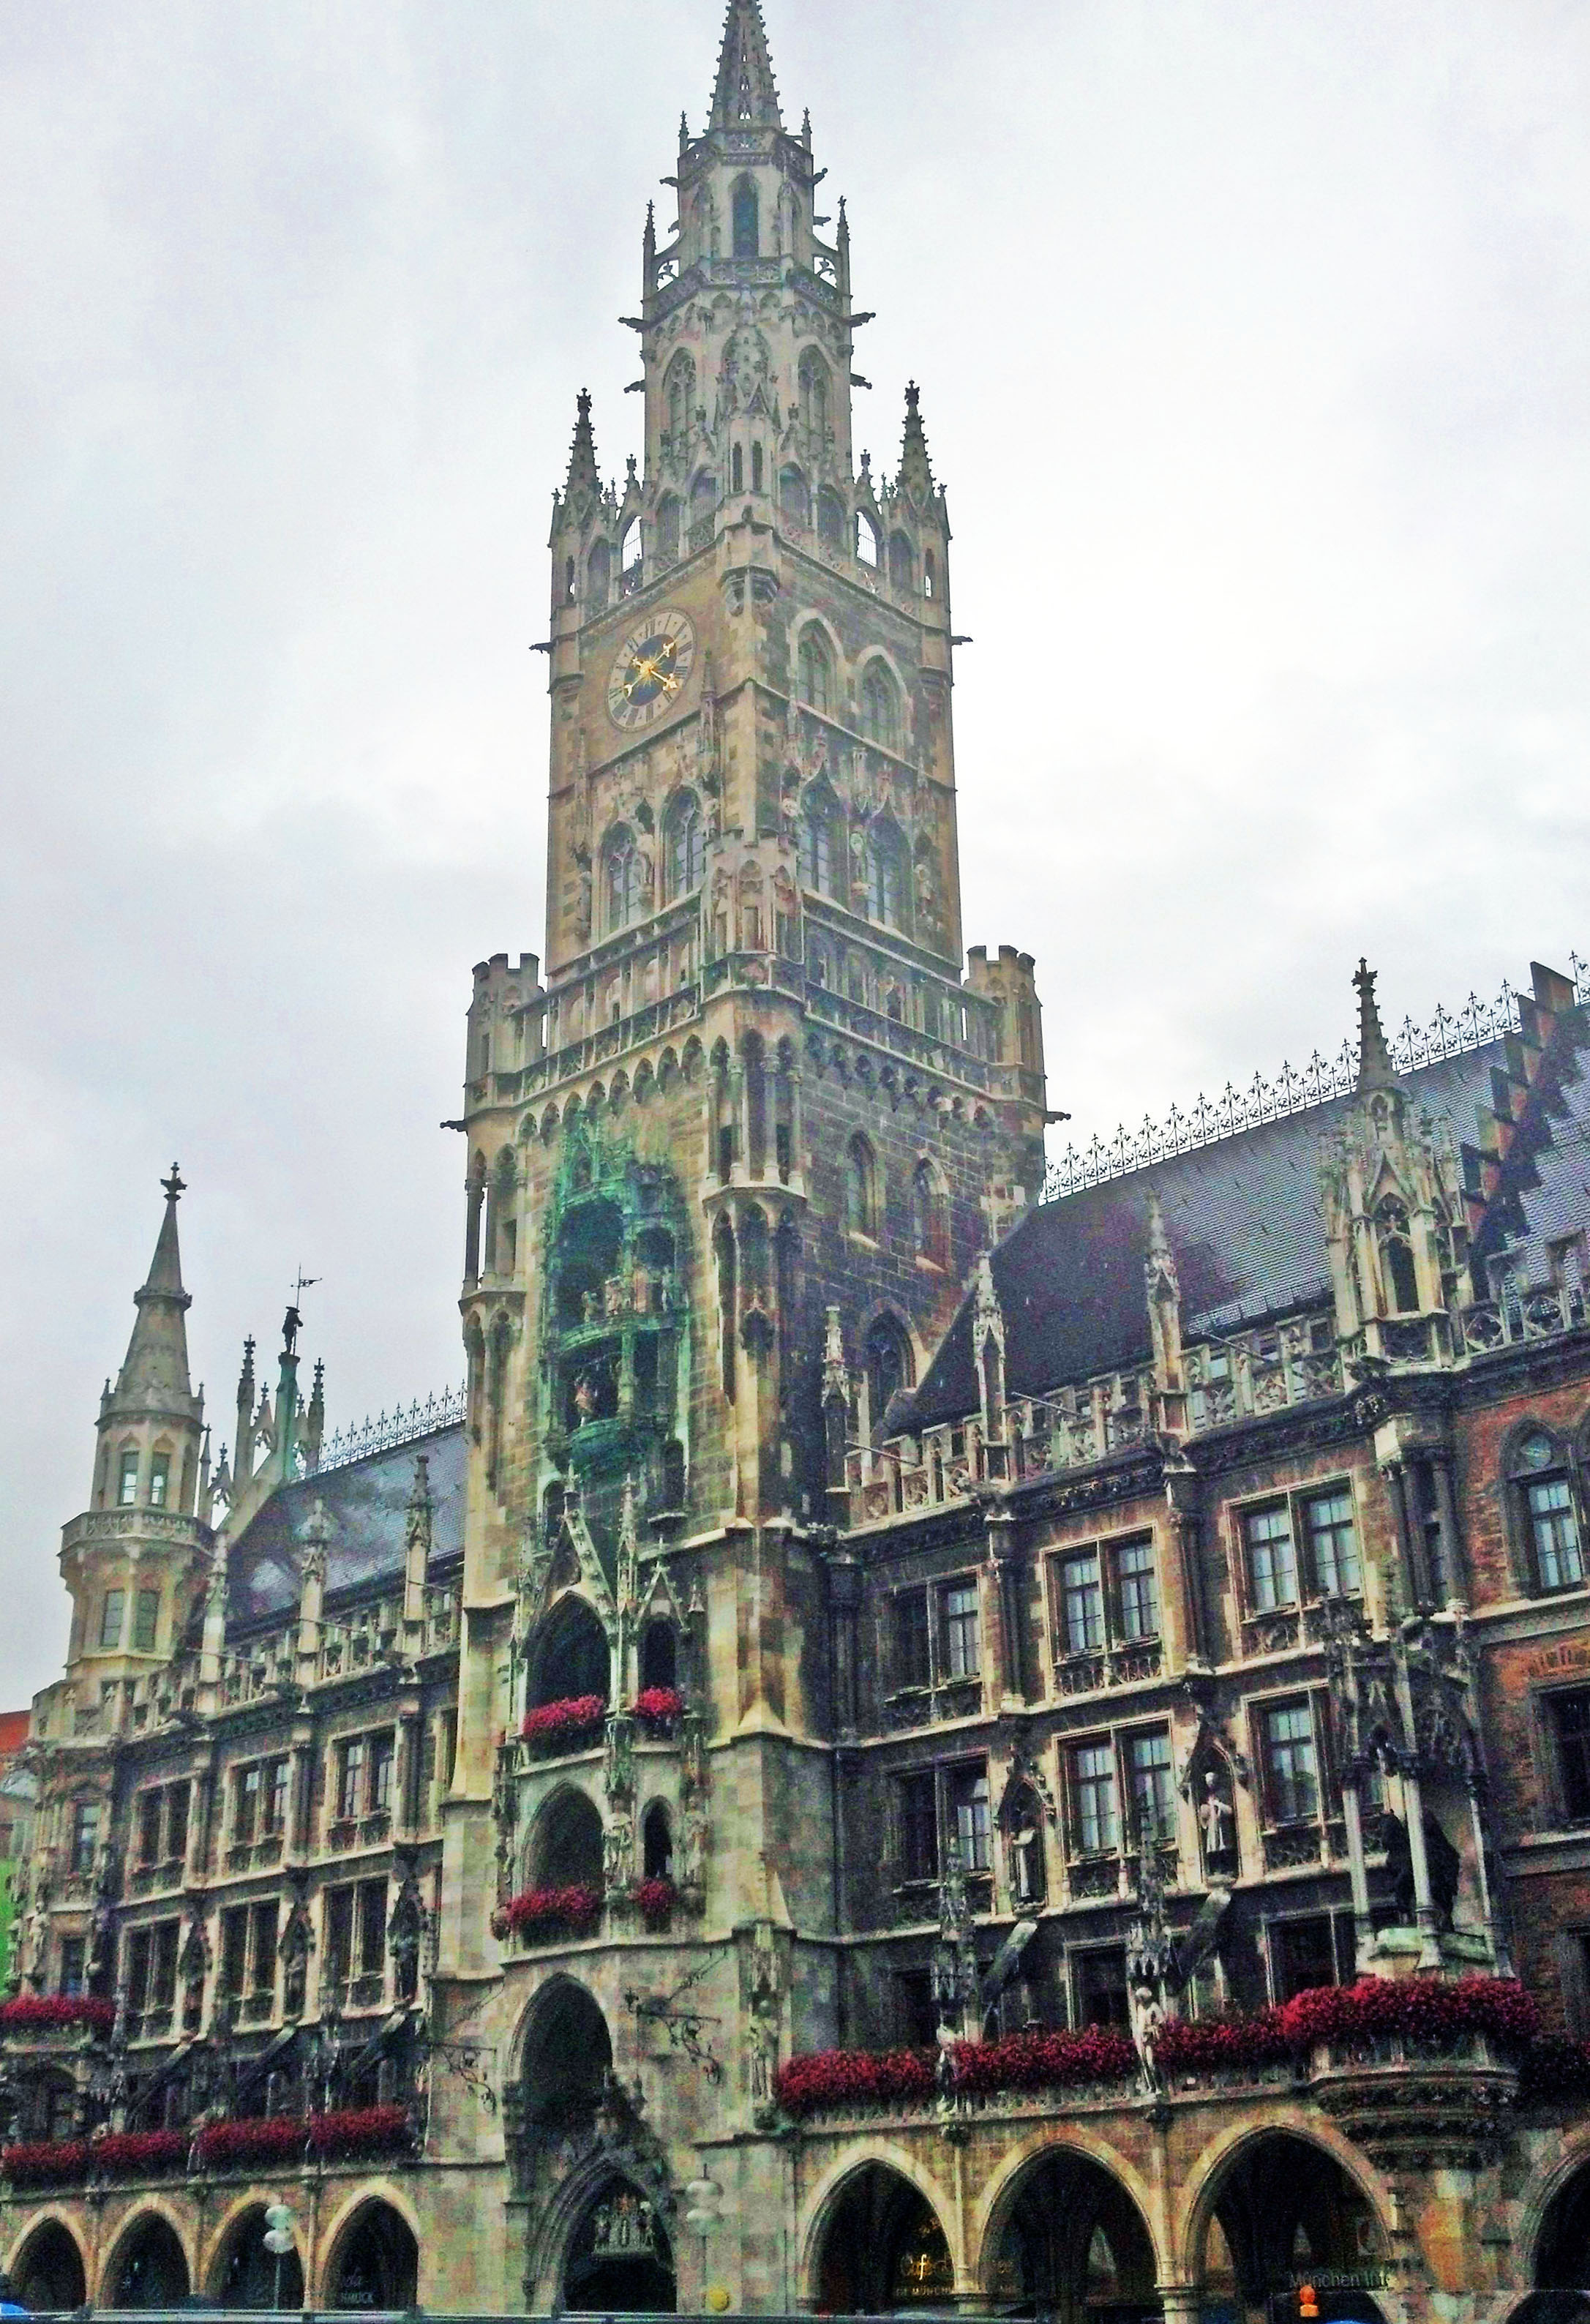 The New Town Hall located in the Marienplatz.